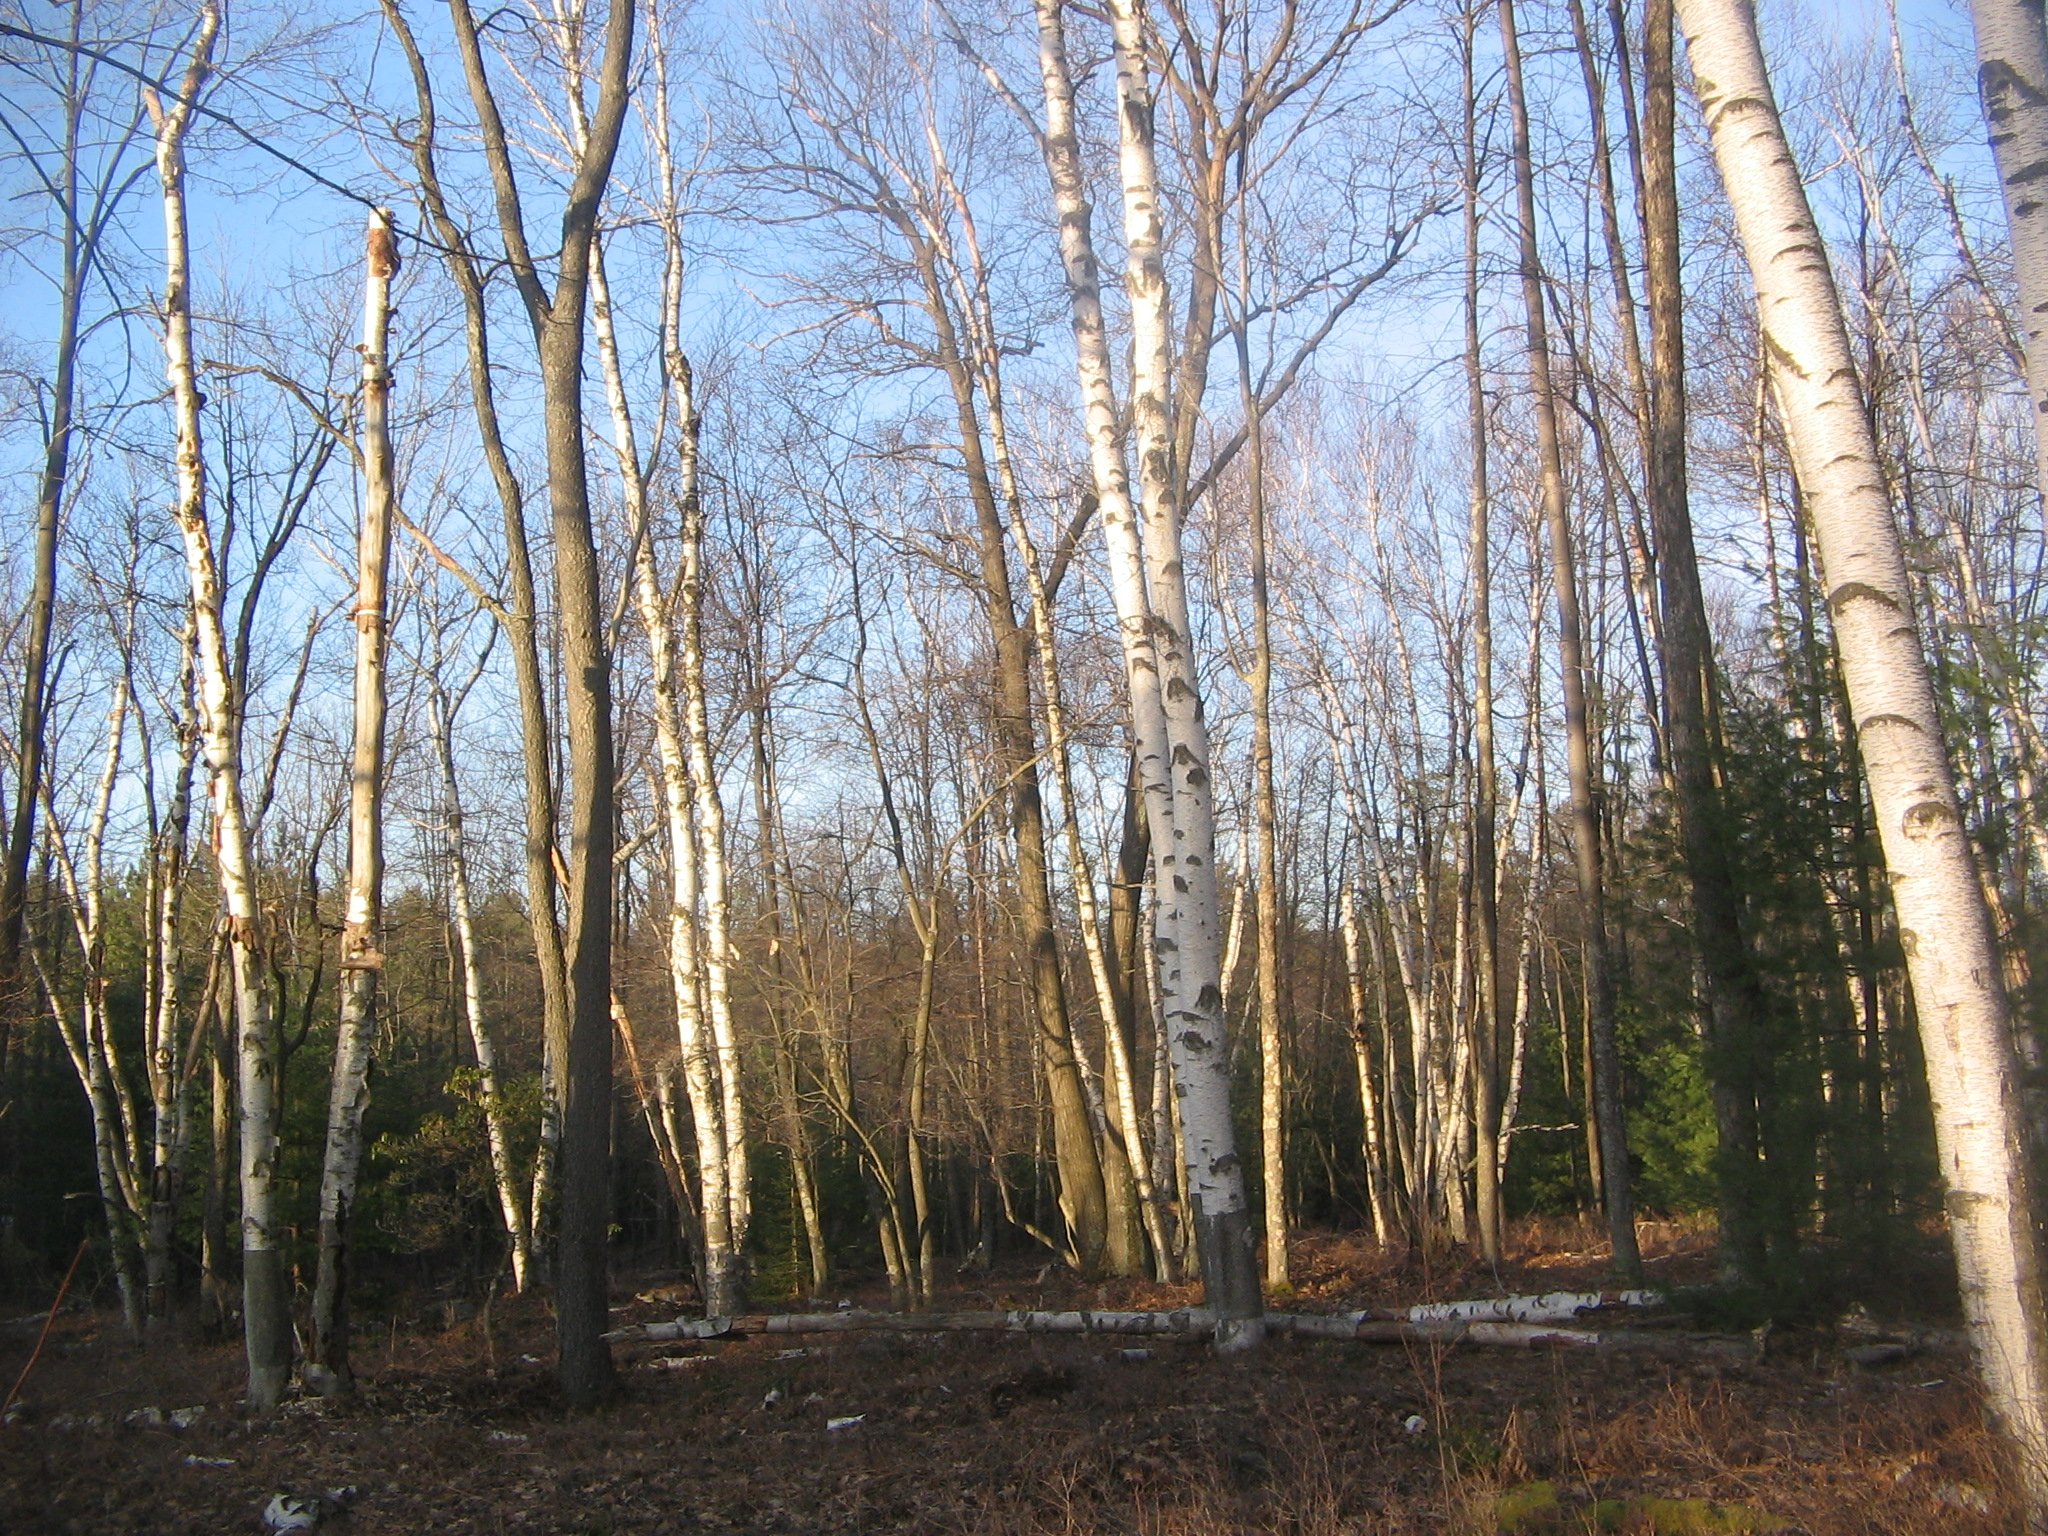 File:Quehanna Birches.jpg - Wikimedia Commons